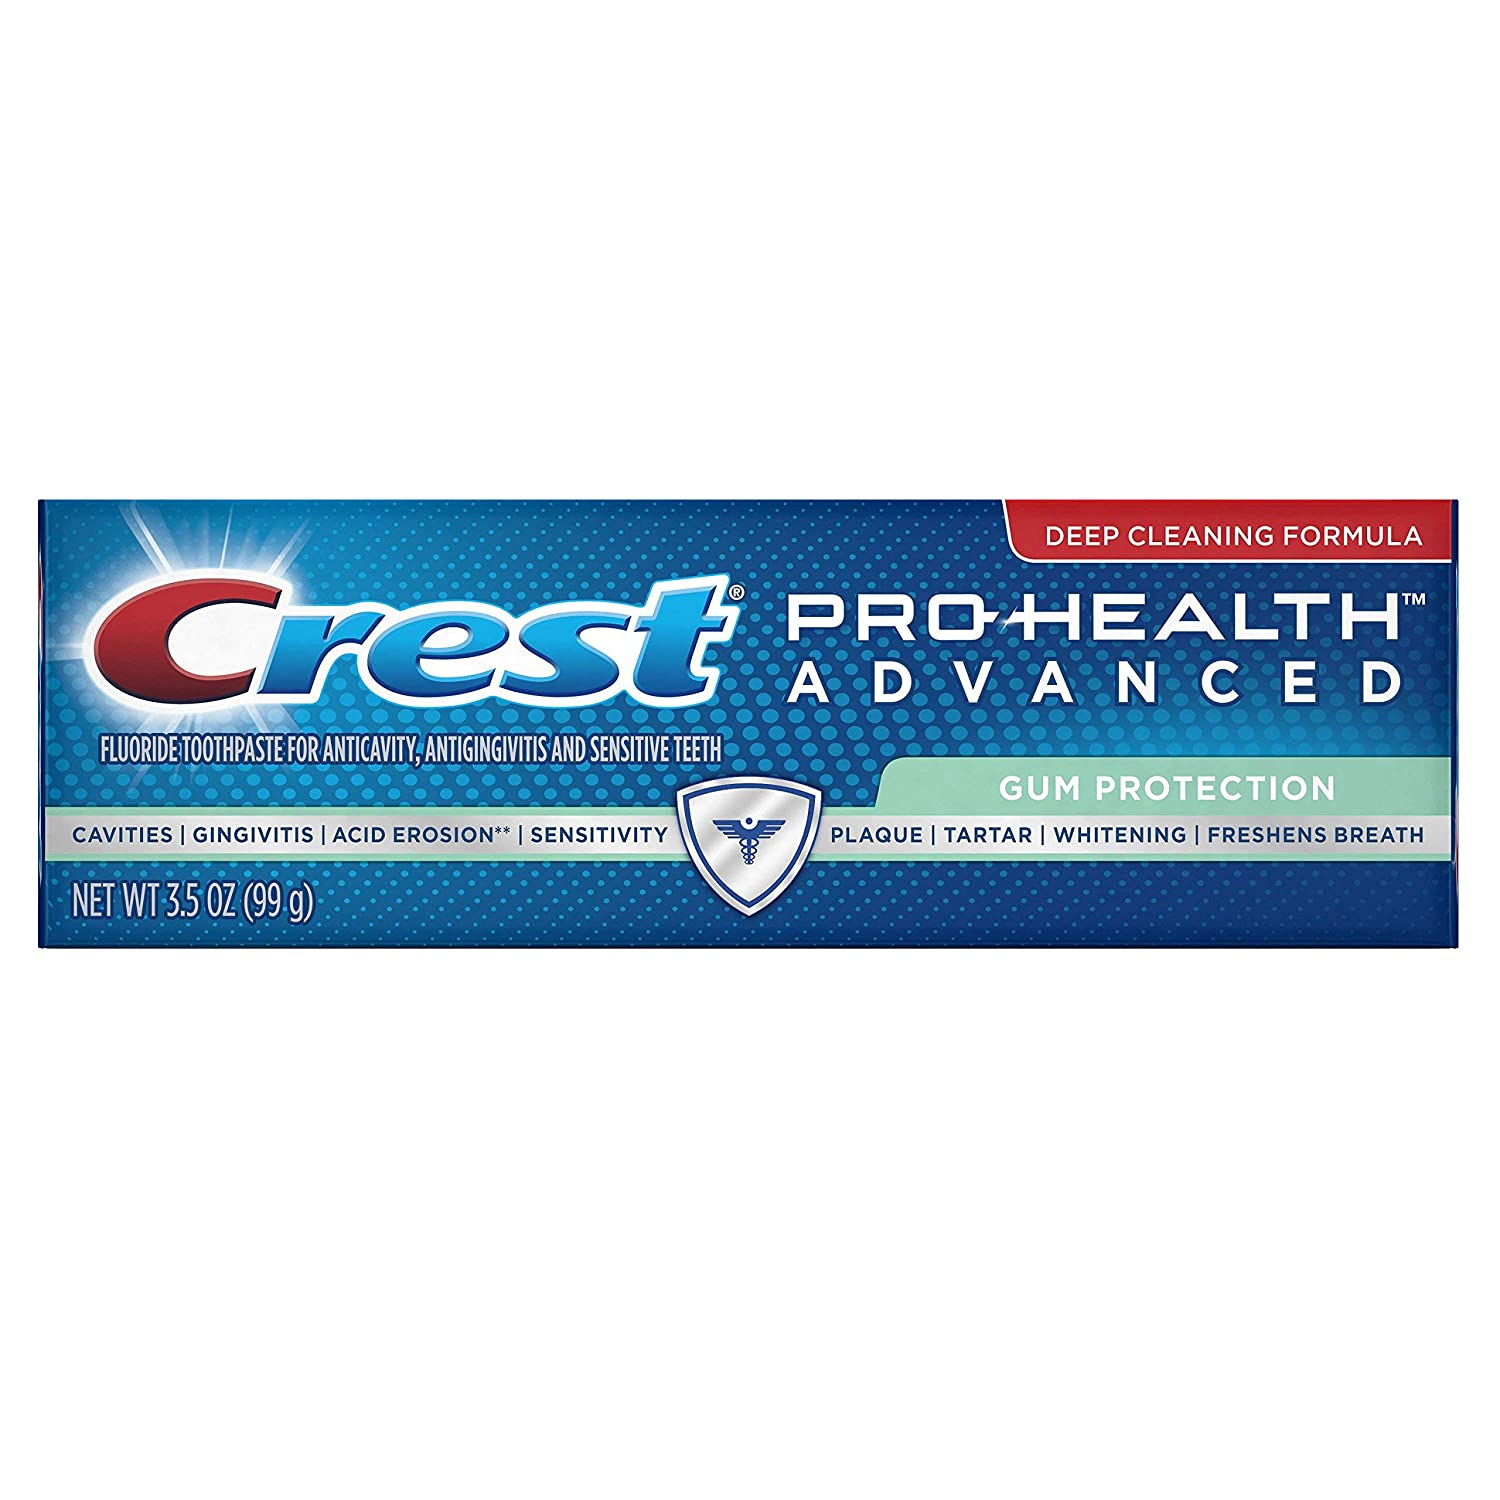 Crest Pro-Health Advanced Toothpaste, Gum Protection 3.5 oz